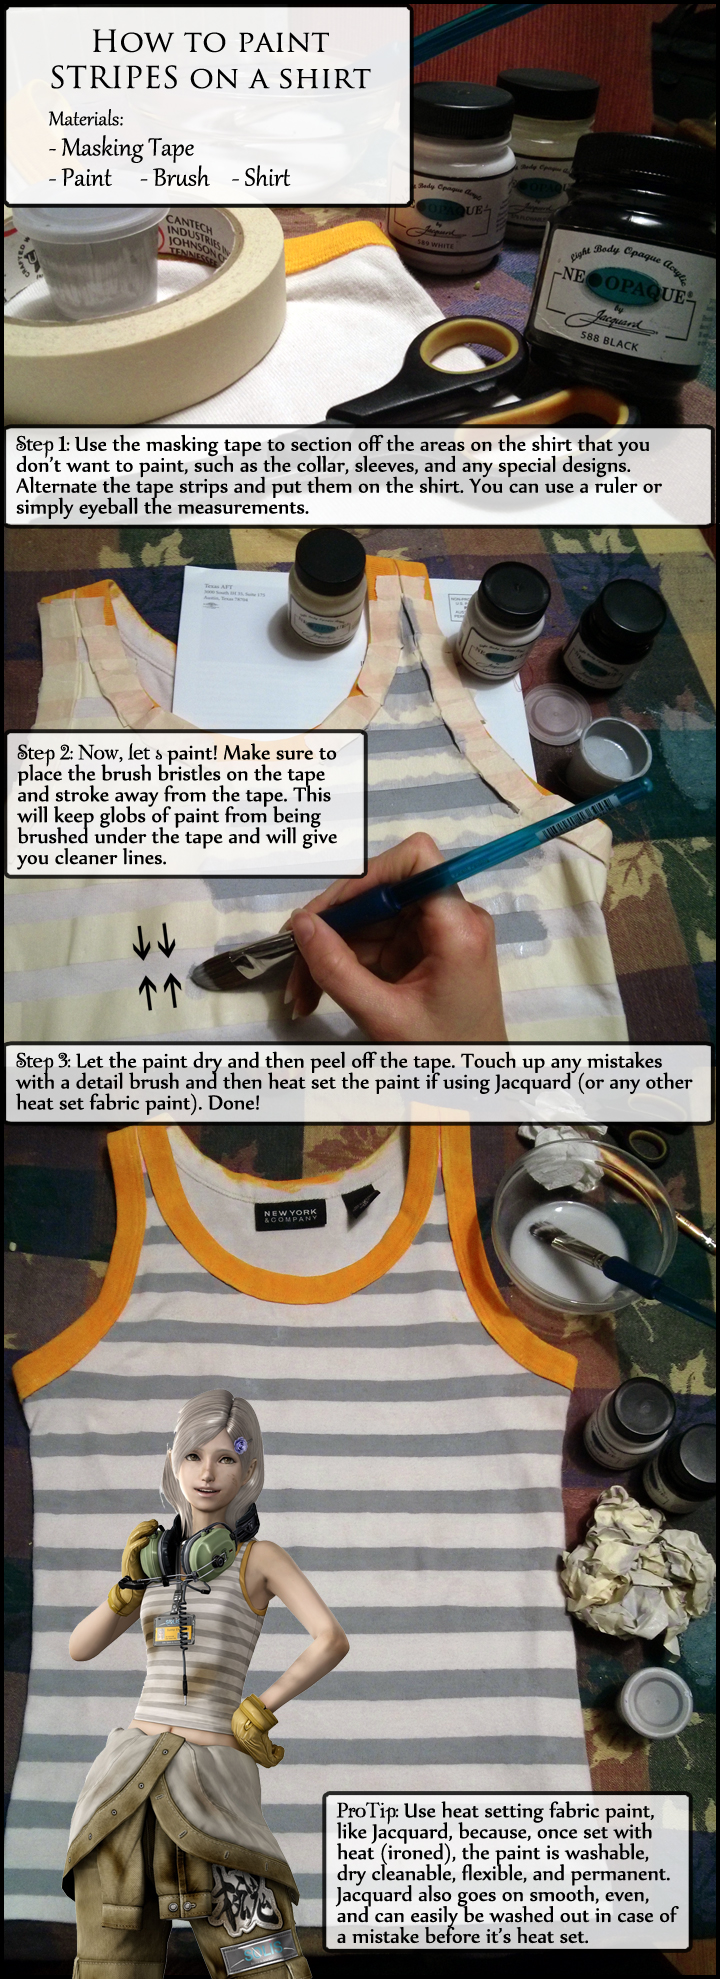 How to: Paint Stripes on a Shirt